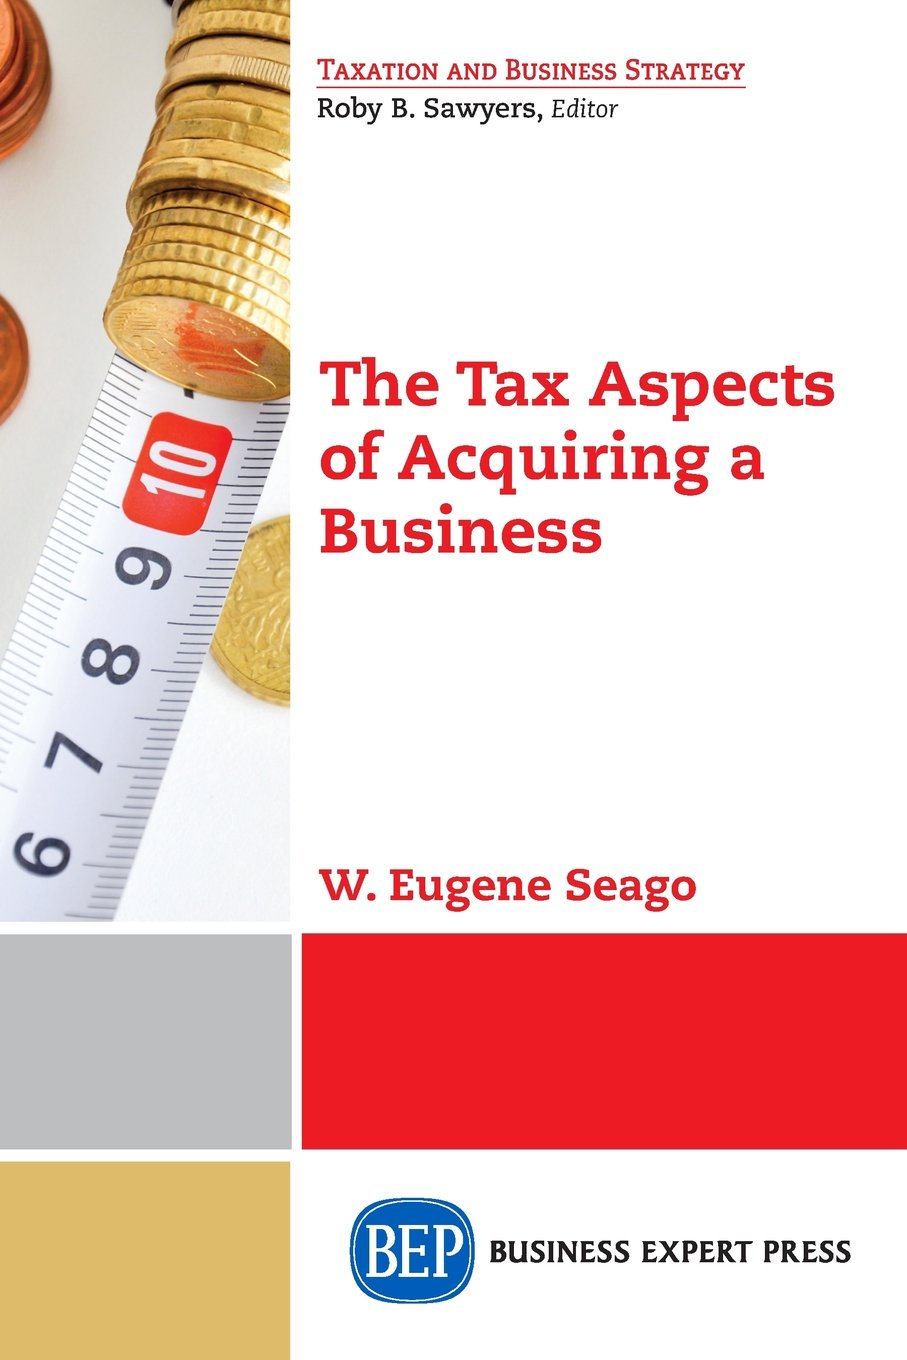 The Tax Aspects of Acquiring a Business